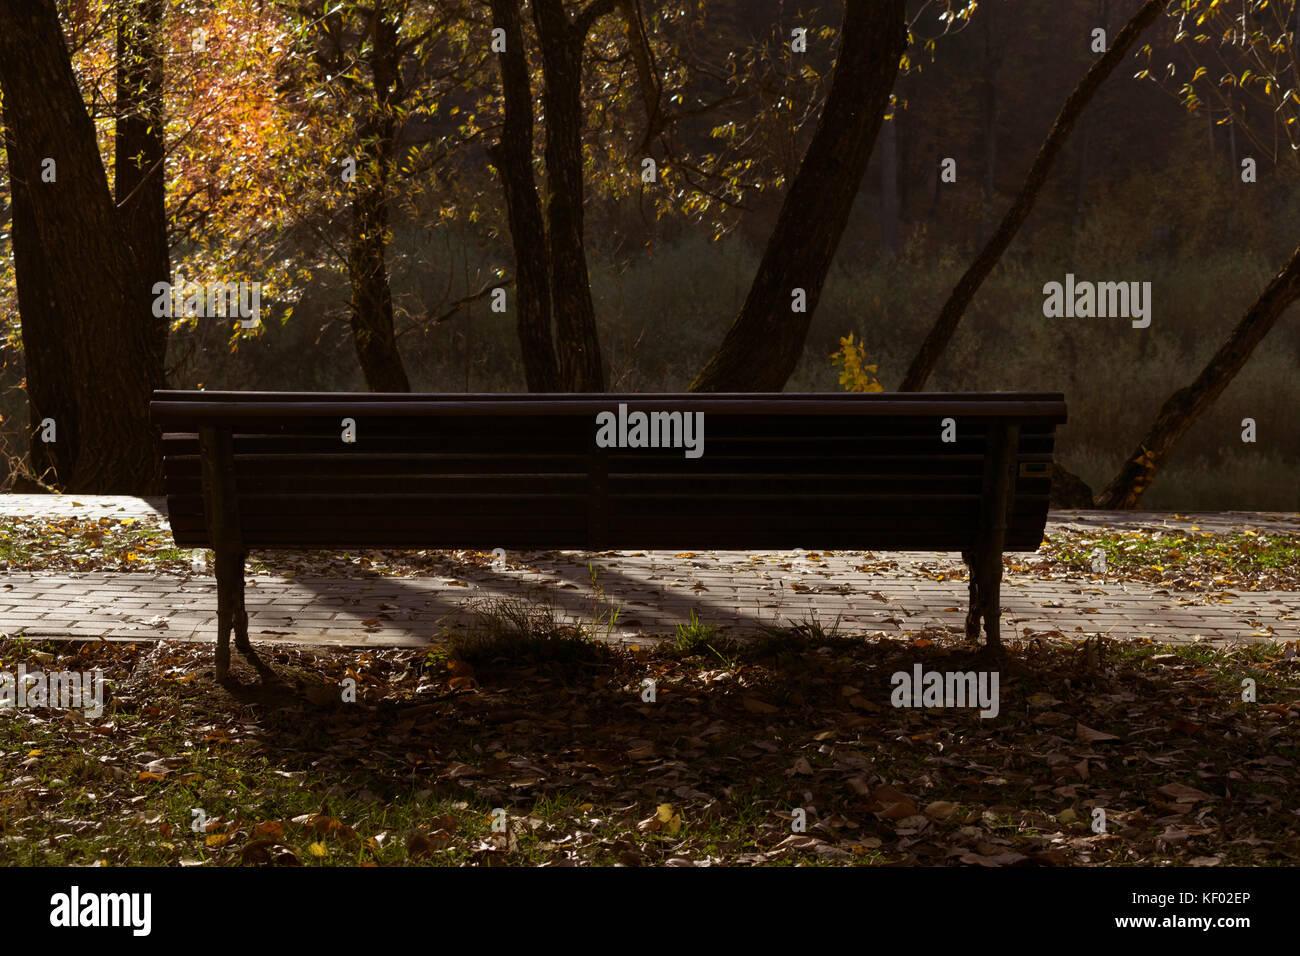 Wooden bench in a park, centered, morning light, autumn - Stock Image